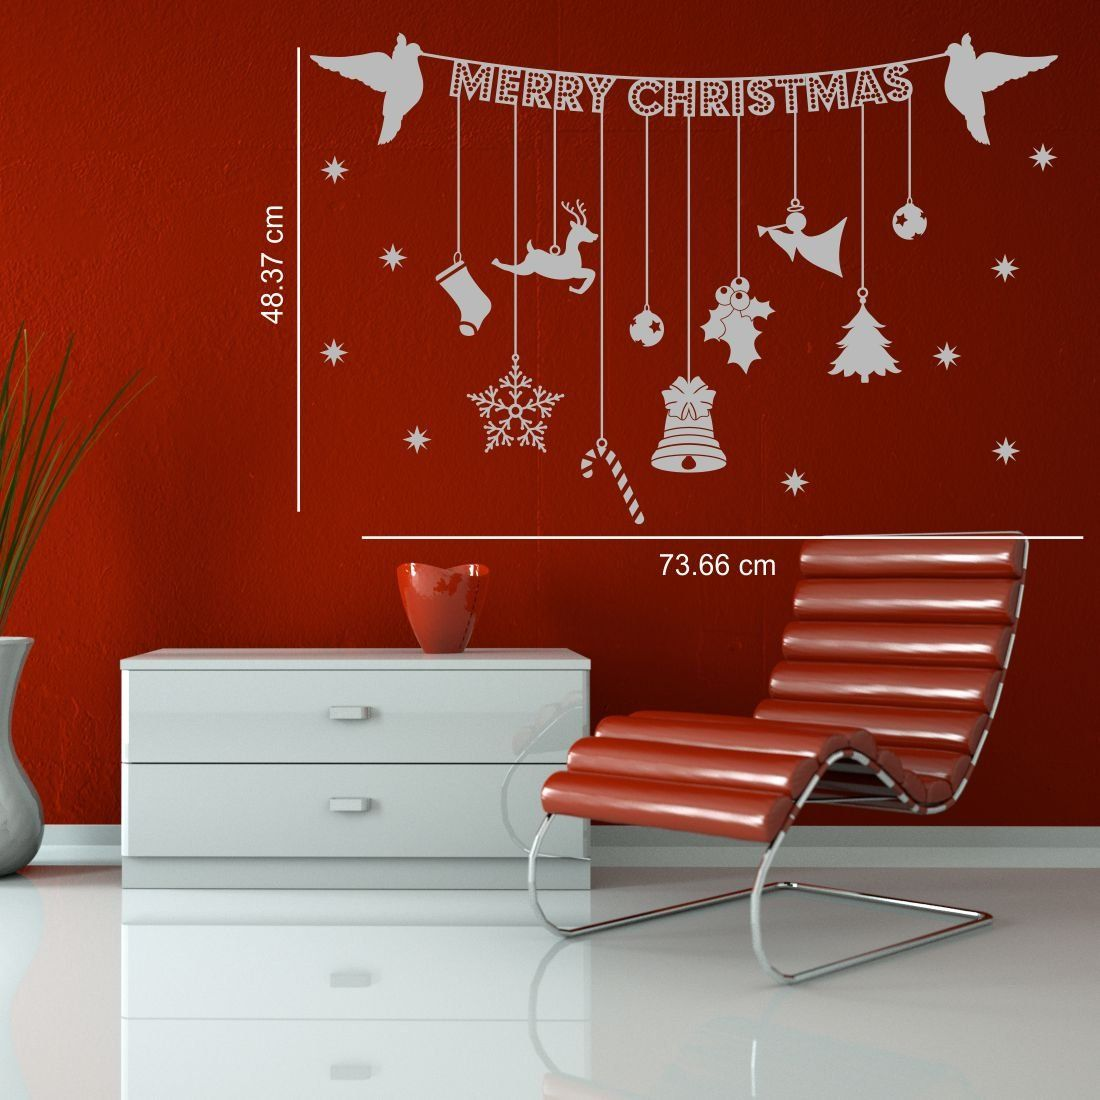 Hanging Christmas Banner With Decoration Ornaments